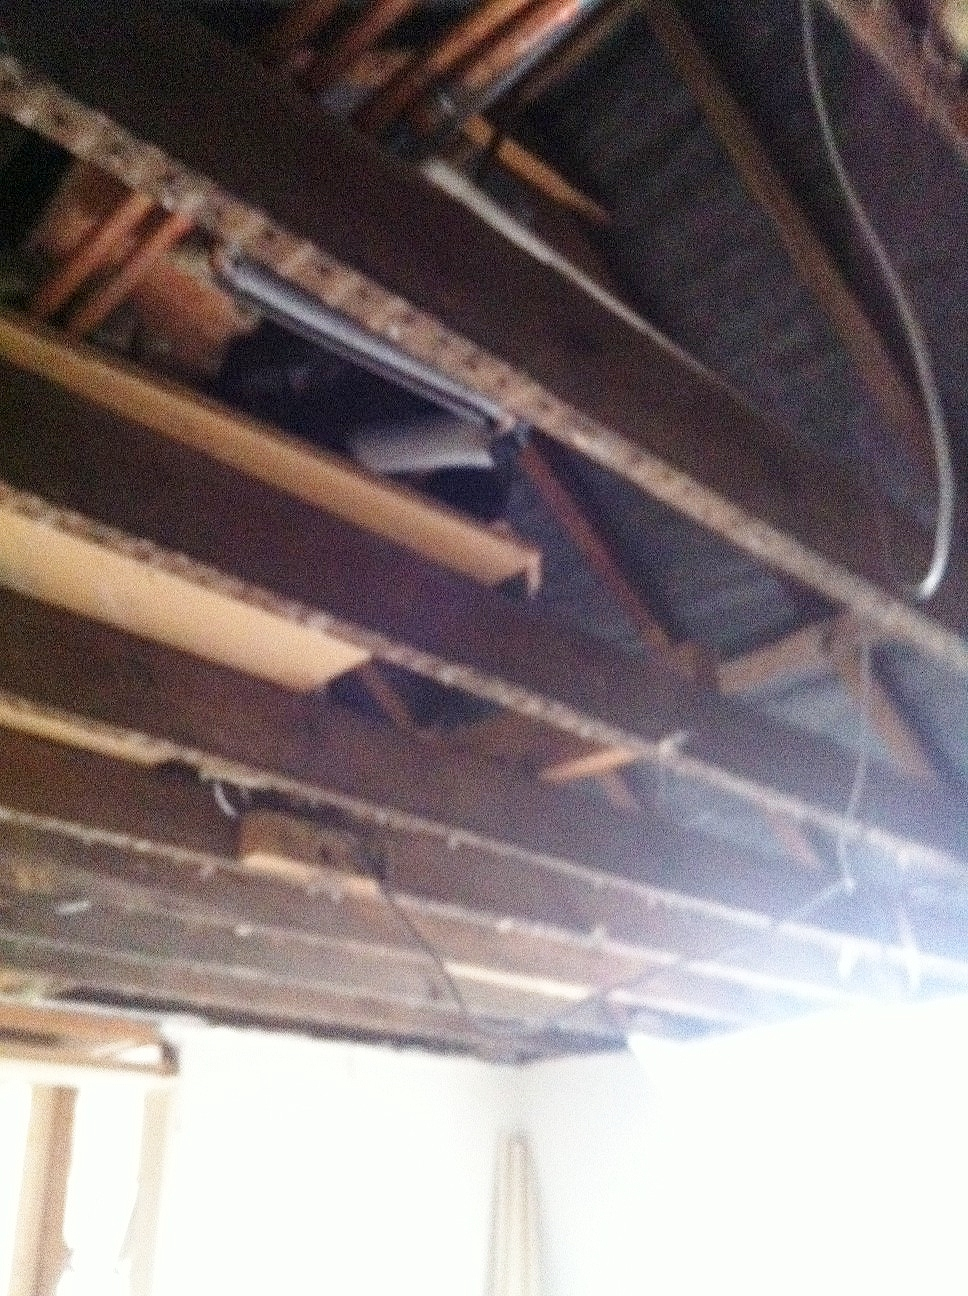 Original rafters to ceiling in main bedroom...